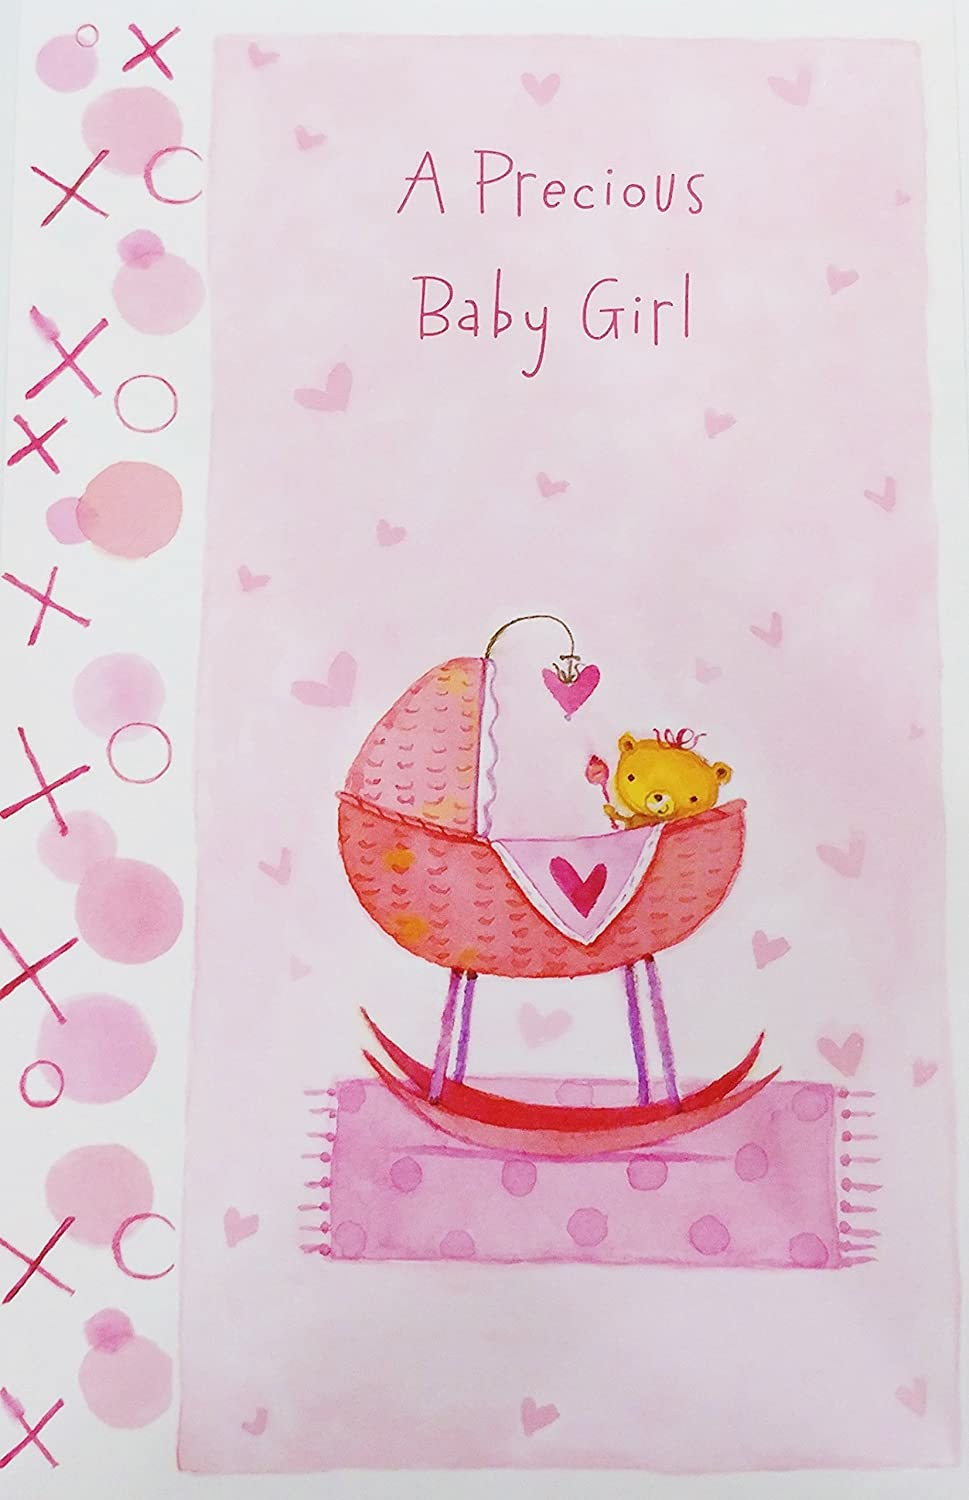 Amazon Com A Precious Baby Girl Congratulations New Daughter Birth Greeting Card Wishing You And Baby Much Love And Every Happiness Office Products